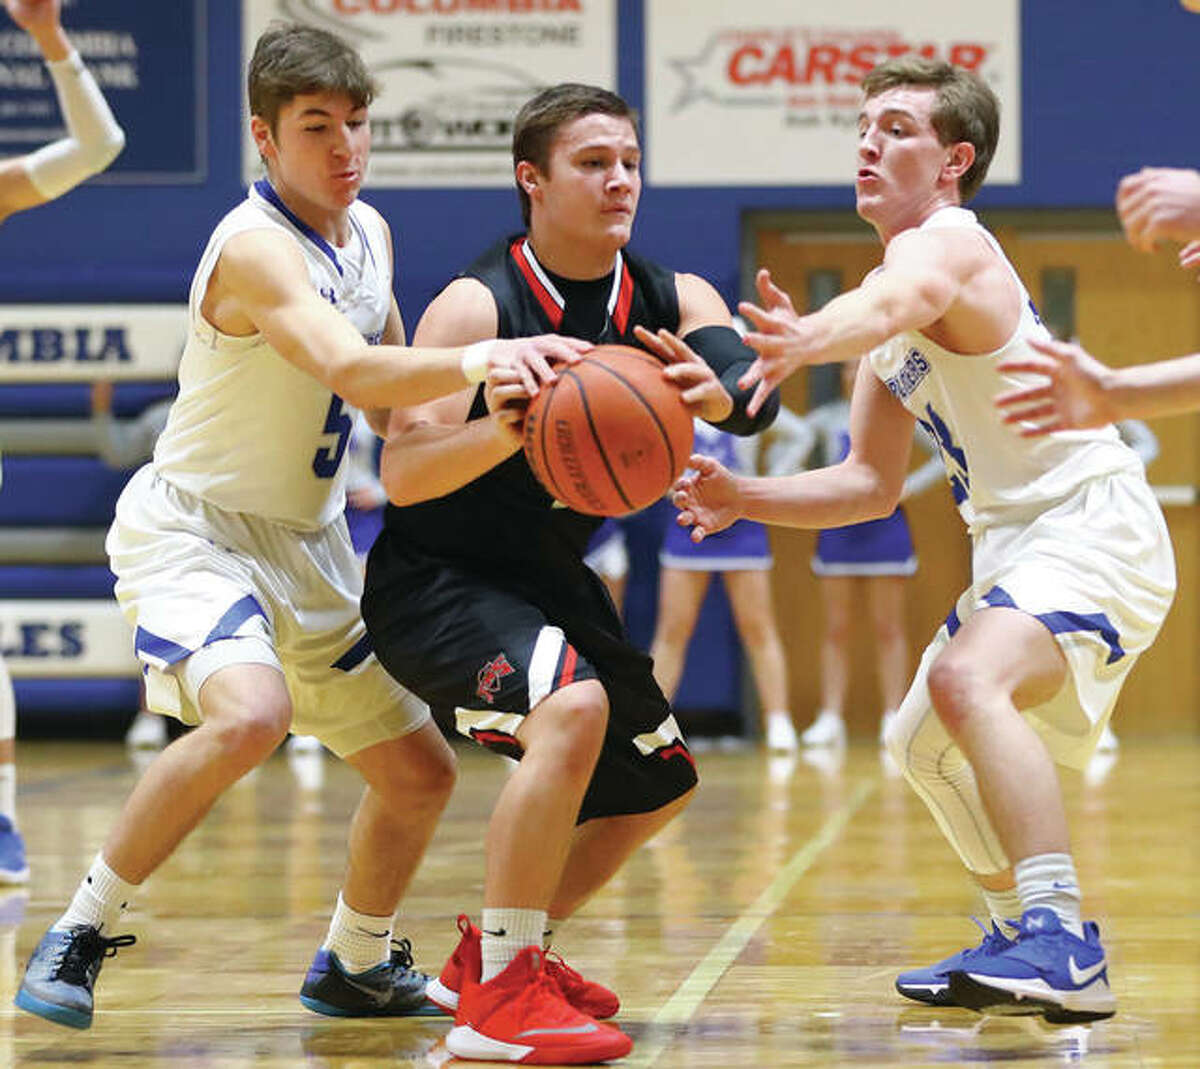 Marquette Catholic's Chris Hartrich (left) and Reagan Snider (right) take the ball away from Triad's Trevor Nott during a game in the Columbia Holiday Tournament on Dec. 28 in Columbia. The Explorers opened the new year Saturday night in Breese and defeated Mater Dei to improve to 15-0.